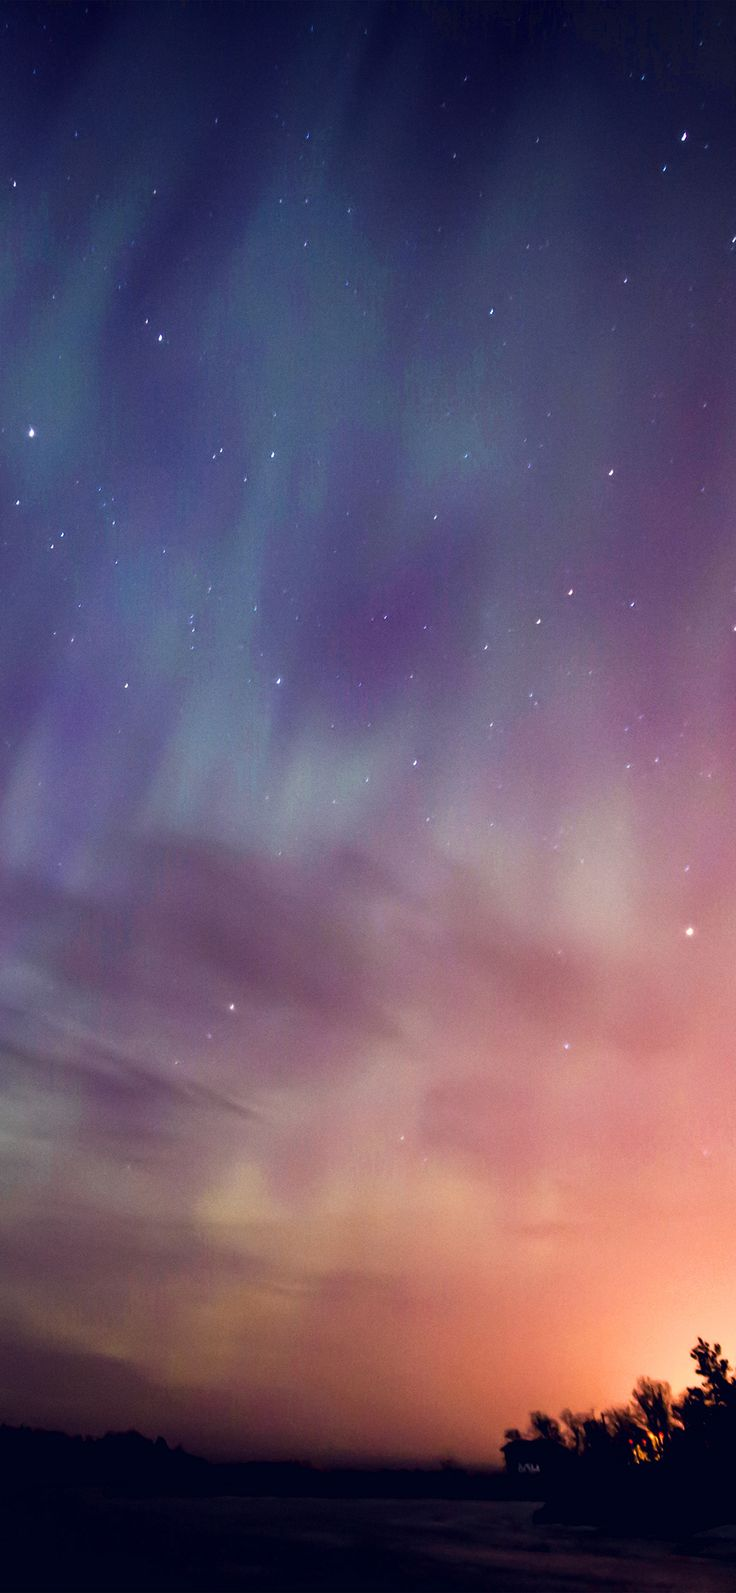 Iphone X Wallpaper Nn30 Space Aurora Night Sky Red Color